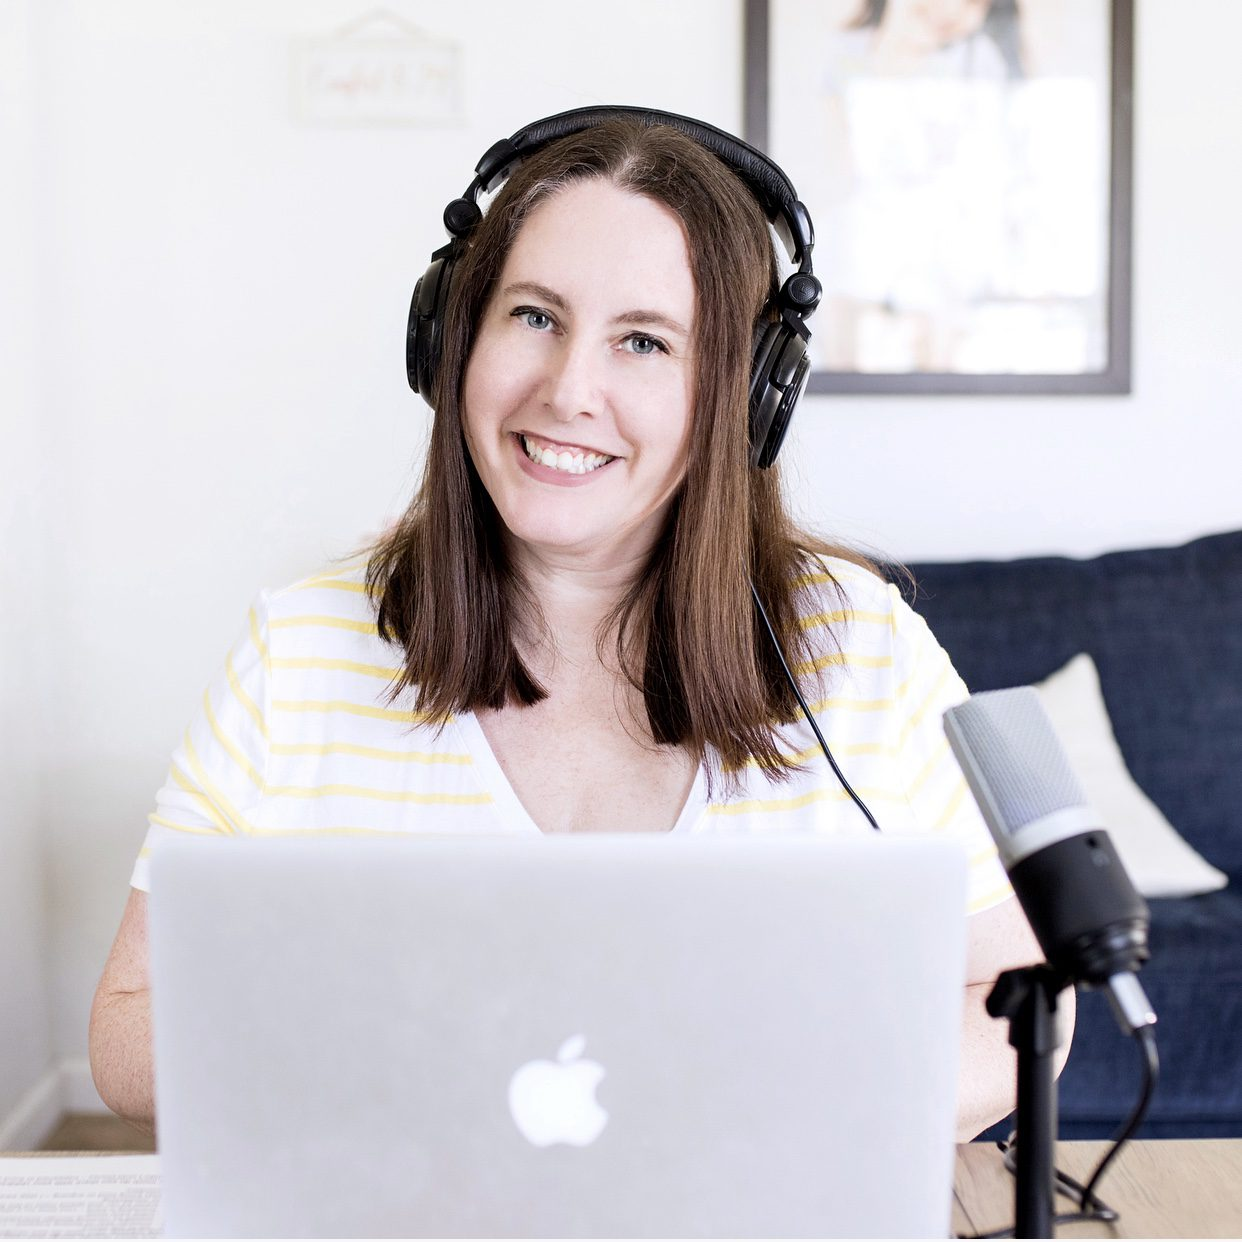 woman on podcast wearing headphones, sitting next to a laptop and external microphone